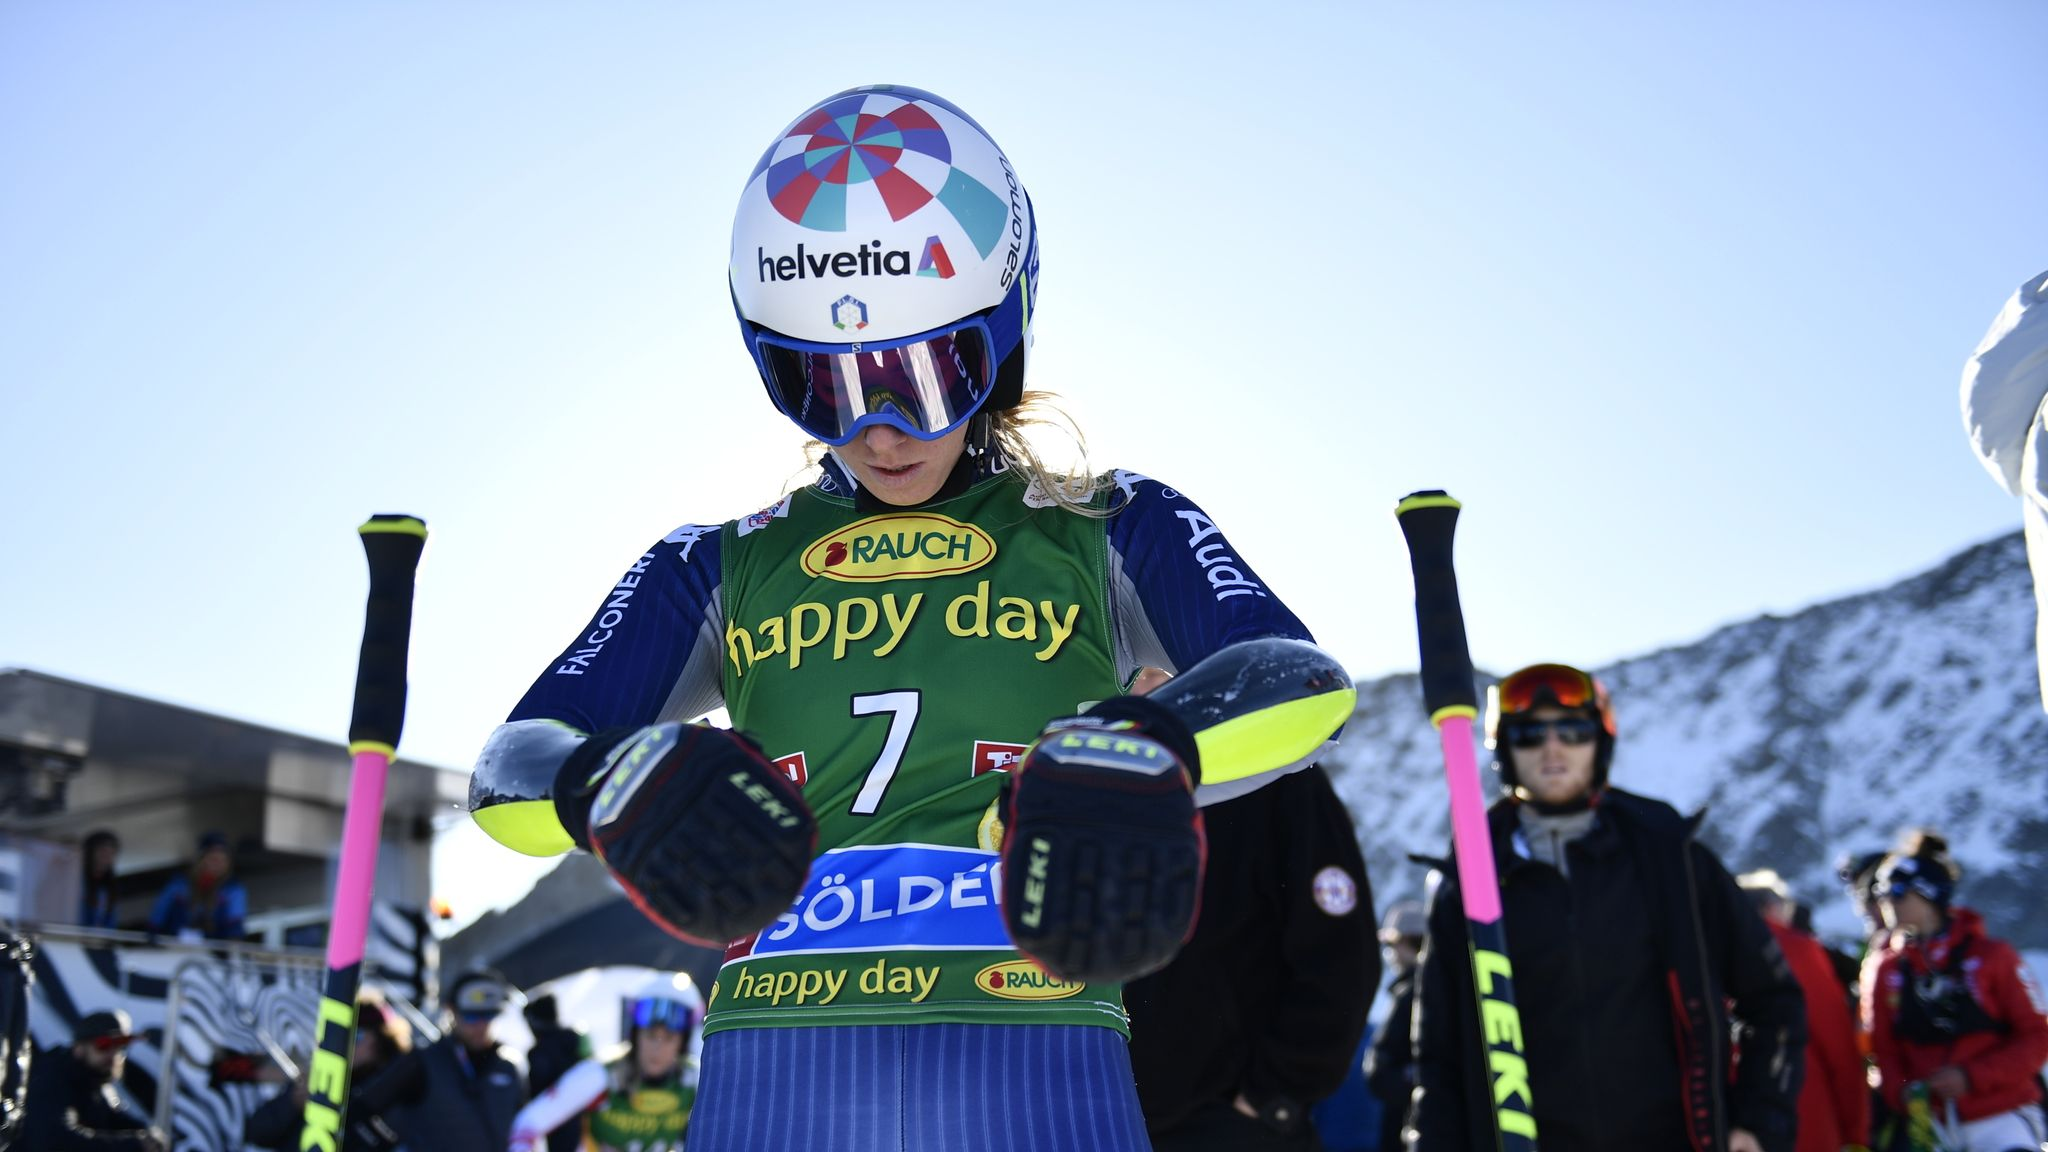 Skier Marta Bassino Set For Second World Cup Race In Killington After Austria Disappointment Other Sports News Sky Sports